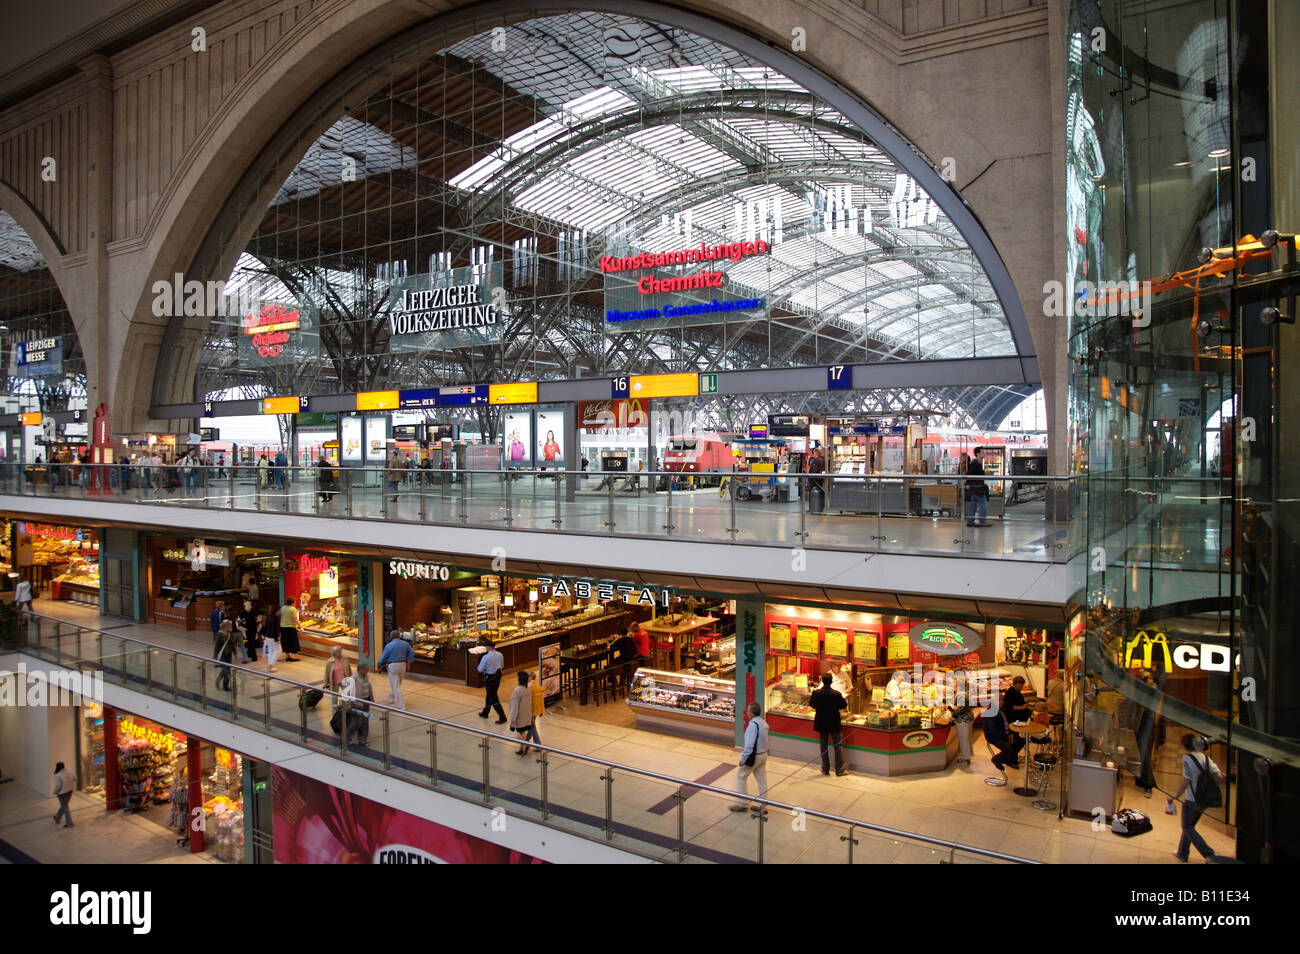 leipzig hauptbahnhof querbahnsteig und halle stock photo royalty free image 17858040 alamy. Black Bedroom Furniture Sets. Home Design Ideas